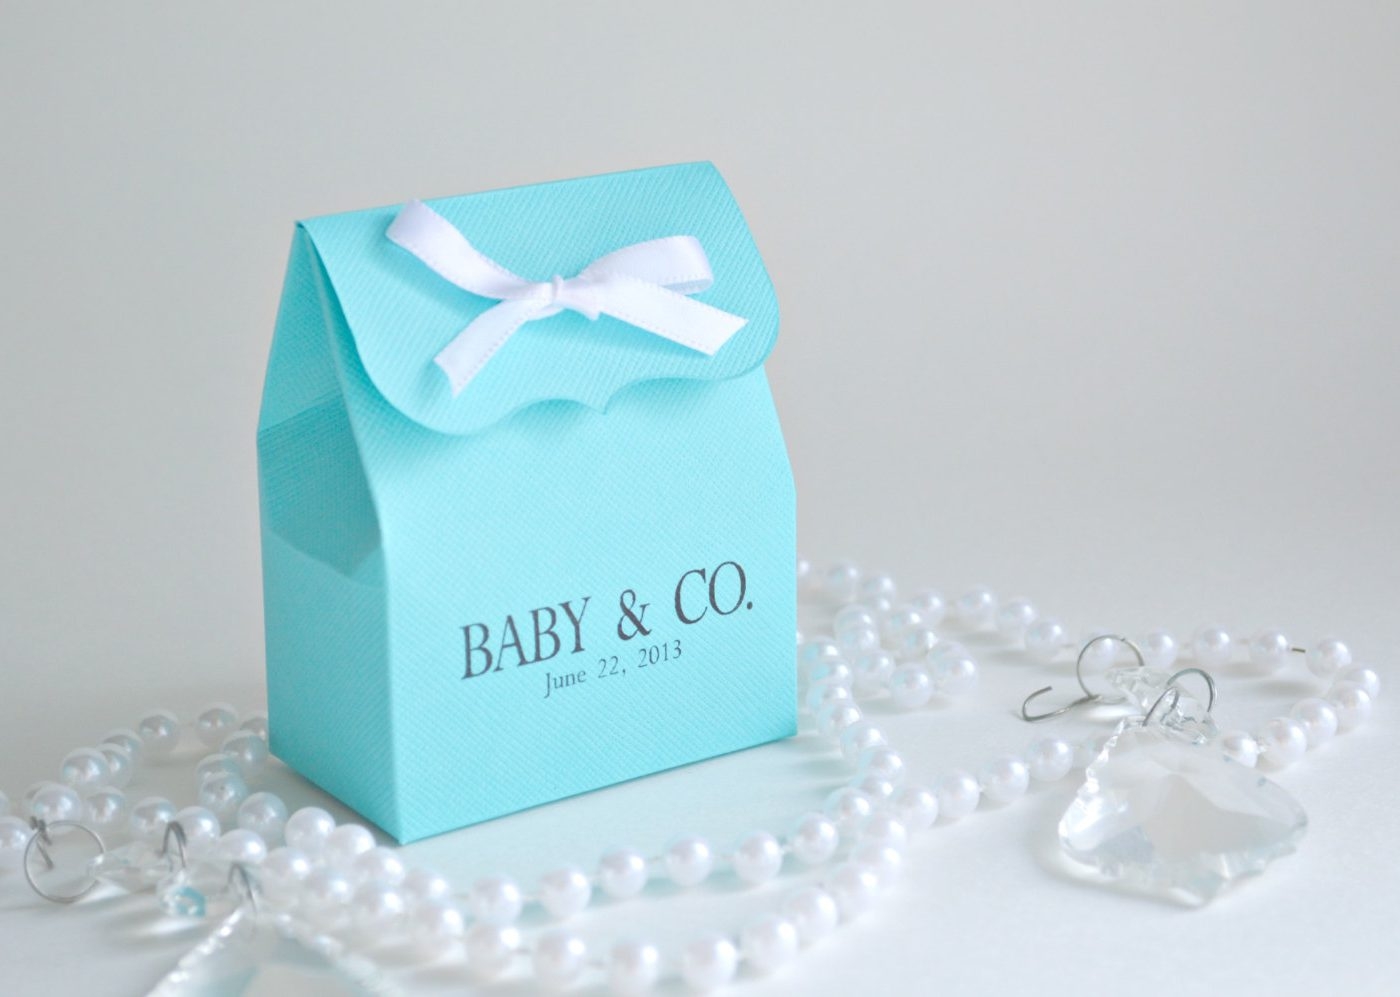 Full Size of Baby Shower:enamour Baby Shower Gifts For Guests Picture Ideas Para Baby Shower Baby Shower Recipes Best Baby Shower Gifts 2018 Fiesta Baby Shower